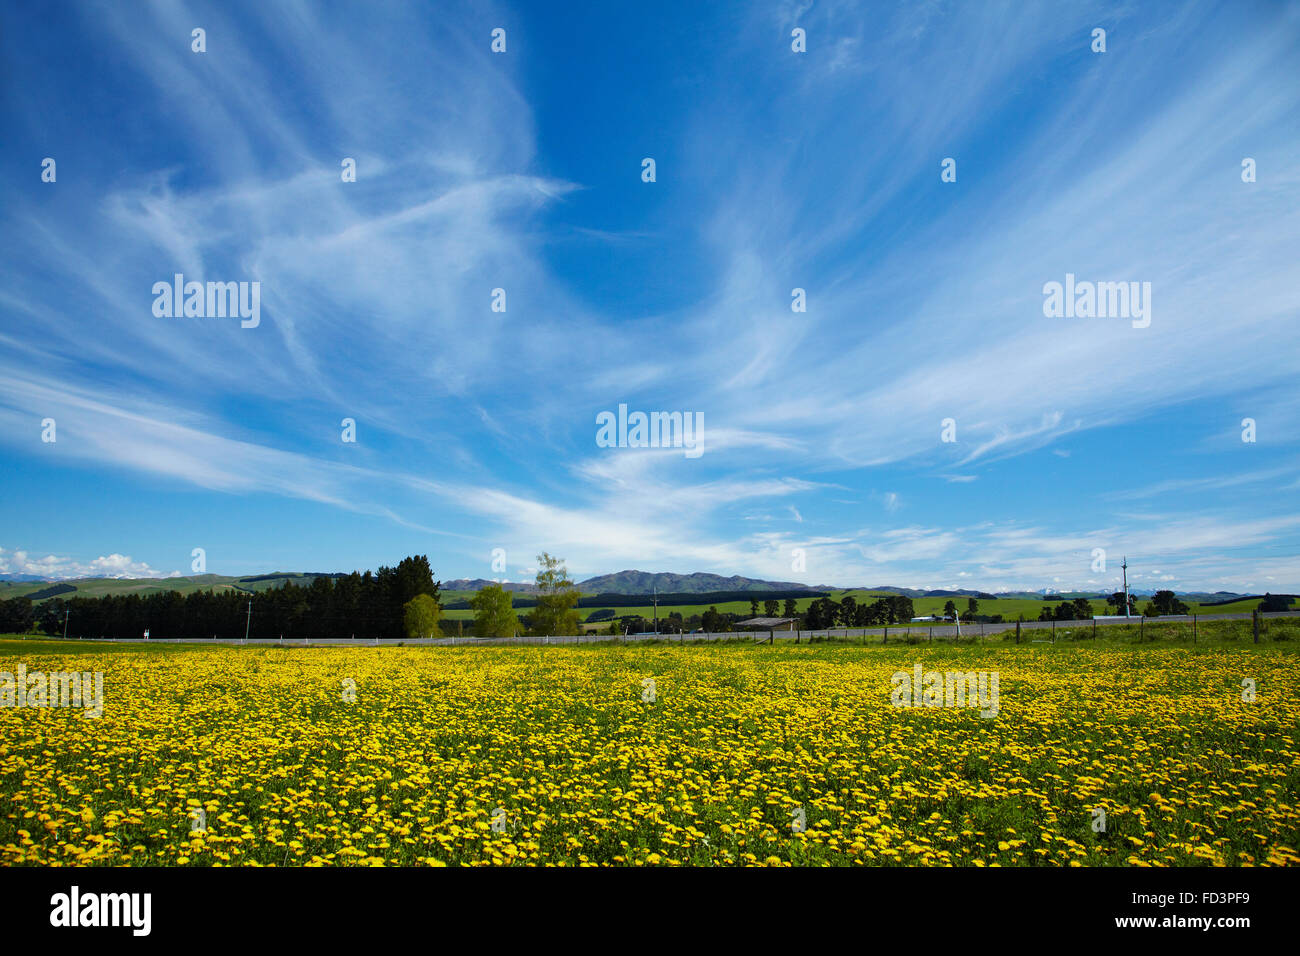 Field of dandelions, near Greta Valley, North Canterbury, South Island, New Zealand - Stock Image